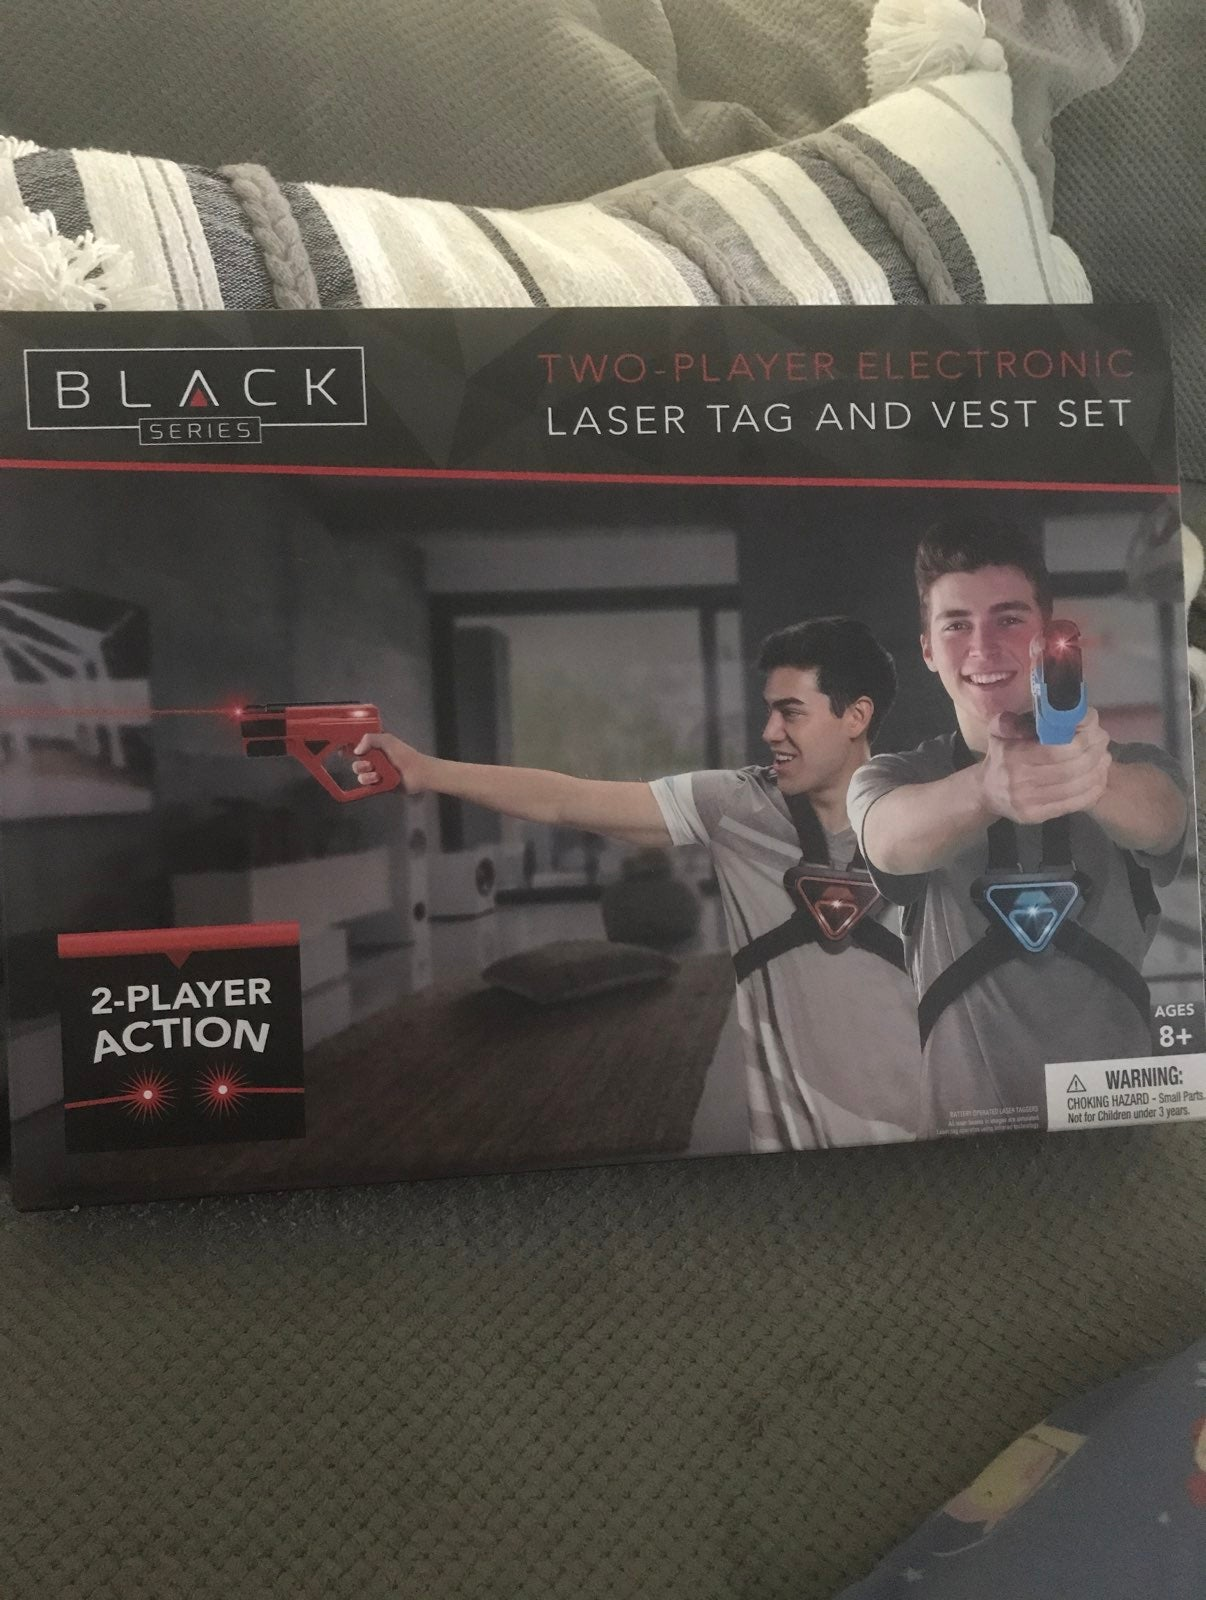 Two player laser tag and vest set